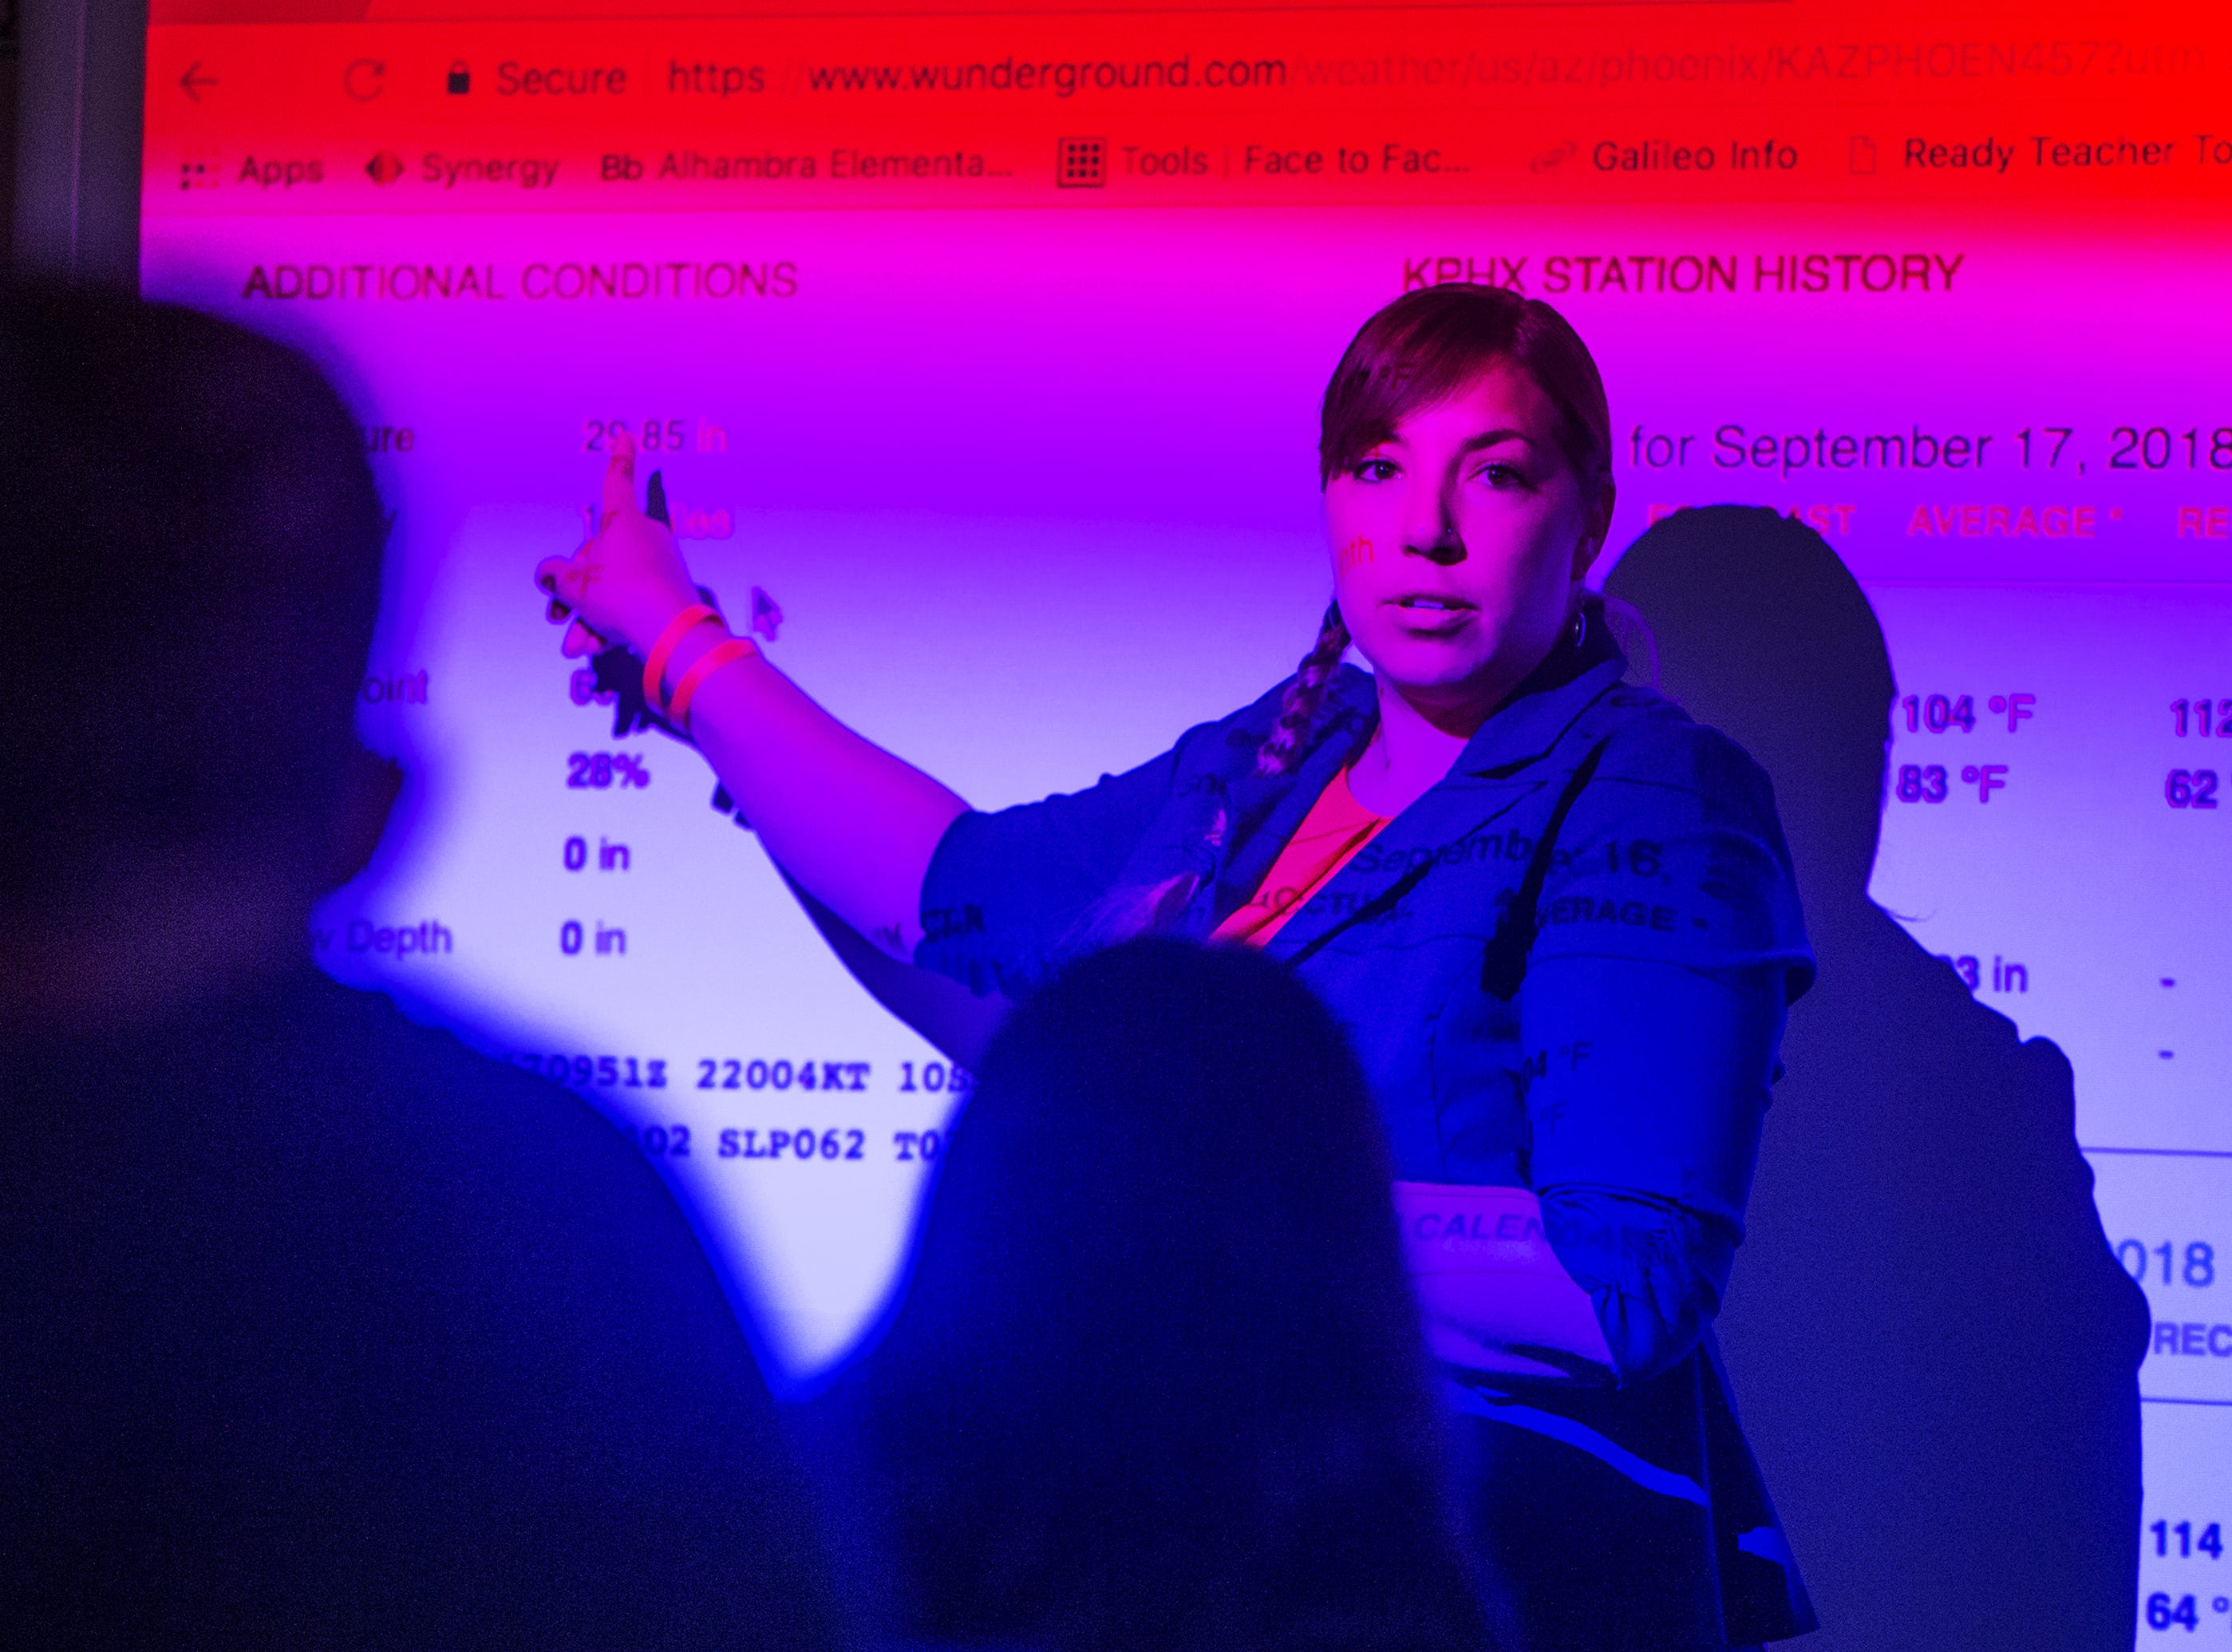 Rebecca Garelli talks about Hurricane Florence as she teaches 6th grade science at Sevilla West Elementary School in Phoenix, Monday morning, September 17, 2018. Garelli has been one of the leaders of the #RedforEd movement, demanding increased funding for education in Arizona.